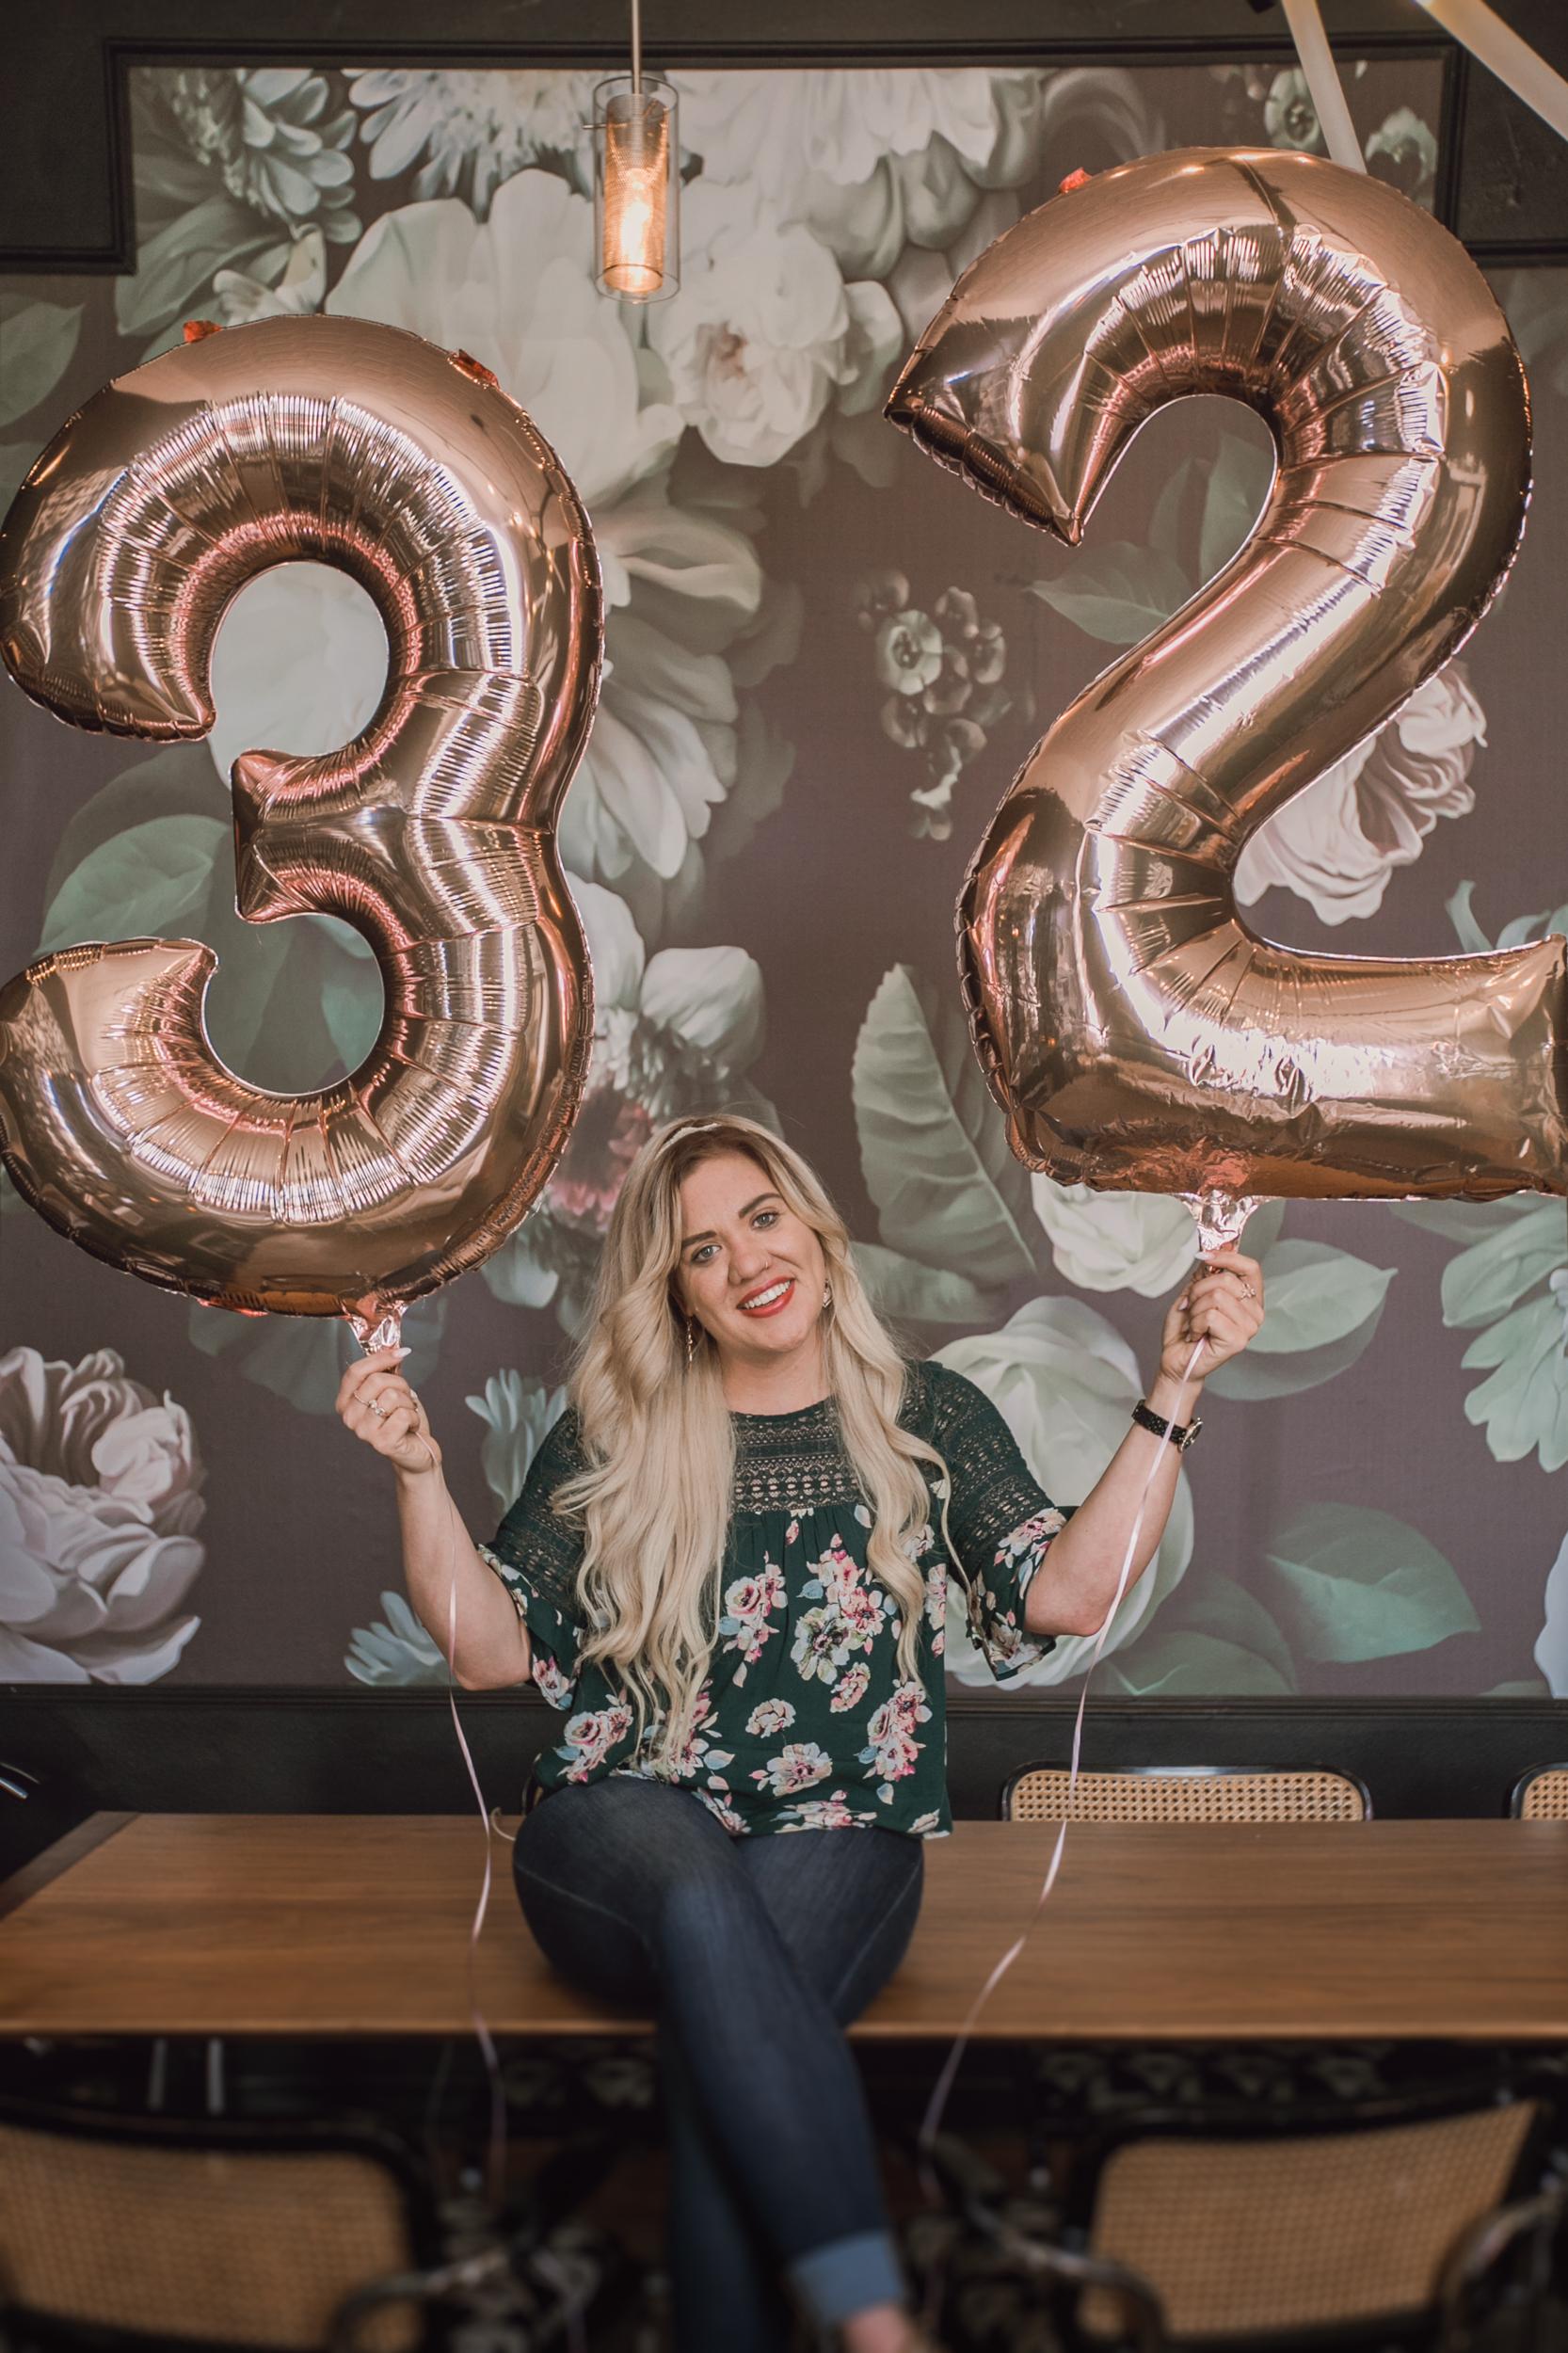 32 things i would tell my younger self, birthday shoot with number ballons, number balloons, rose gold number ballons-www.rachelsmak.com7.jpg